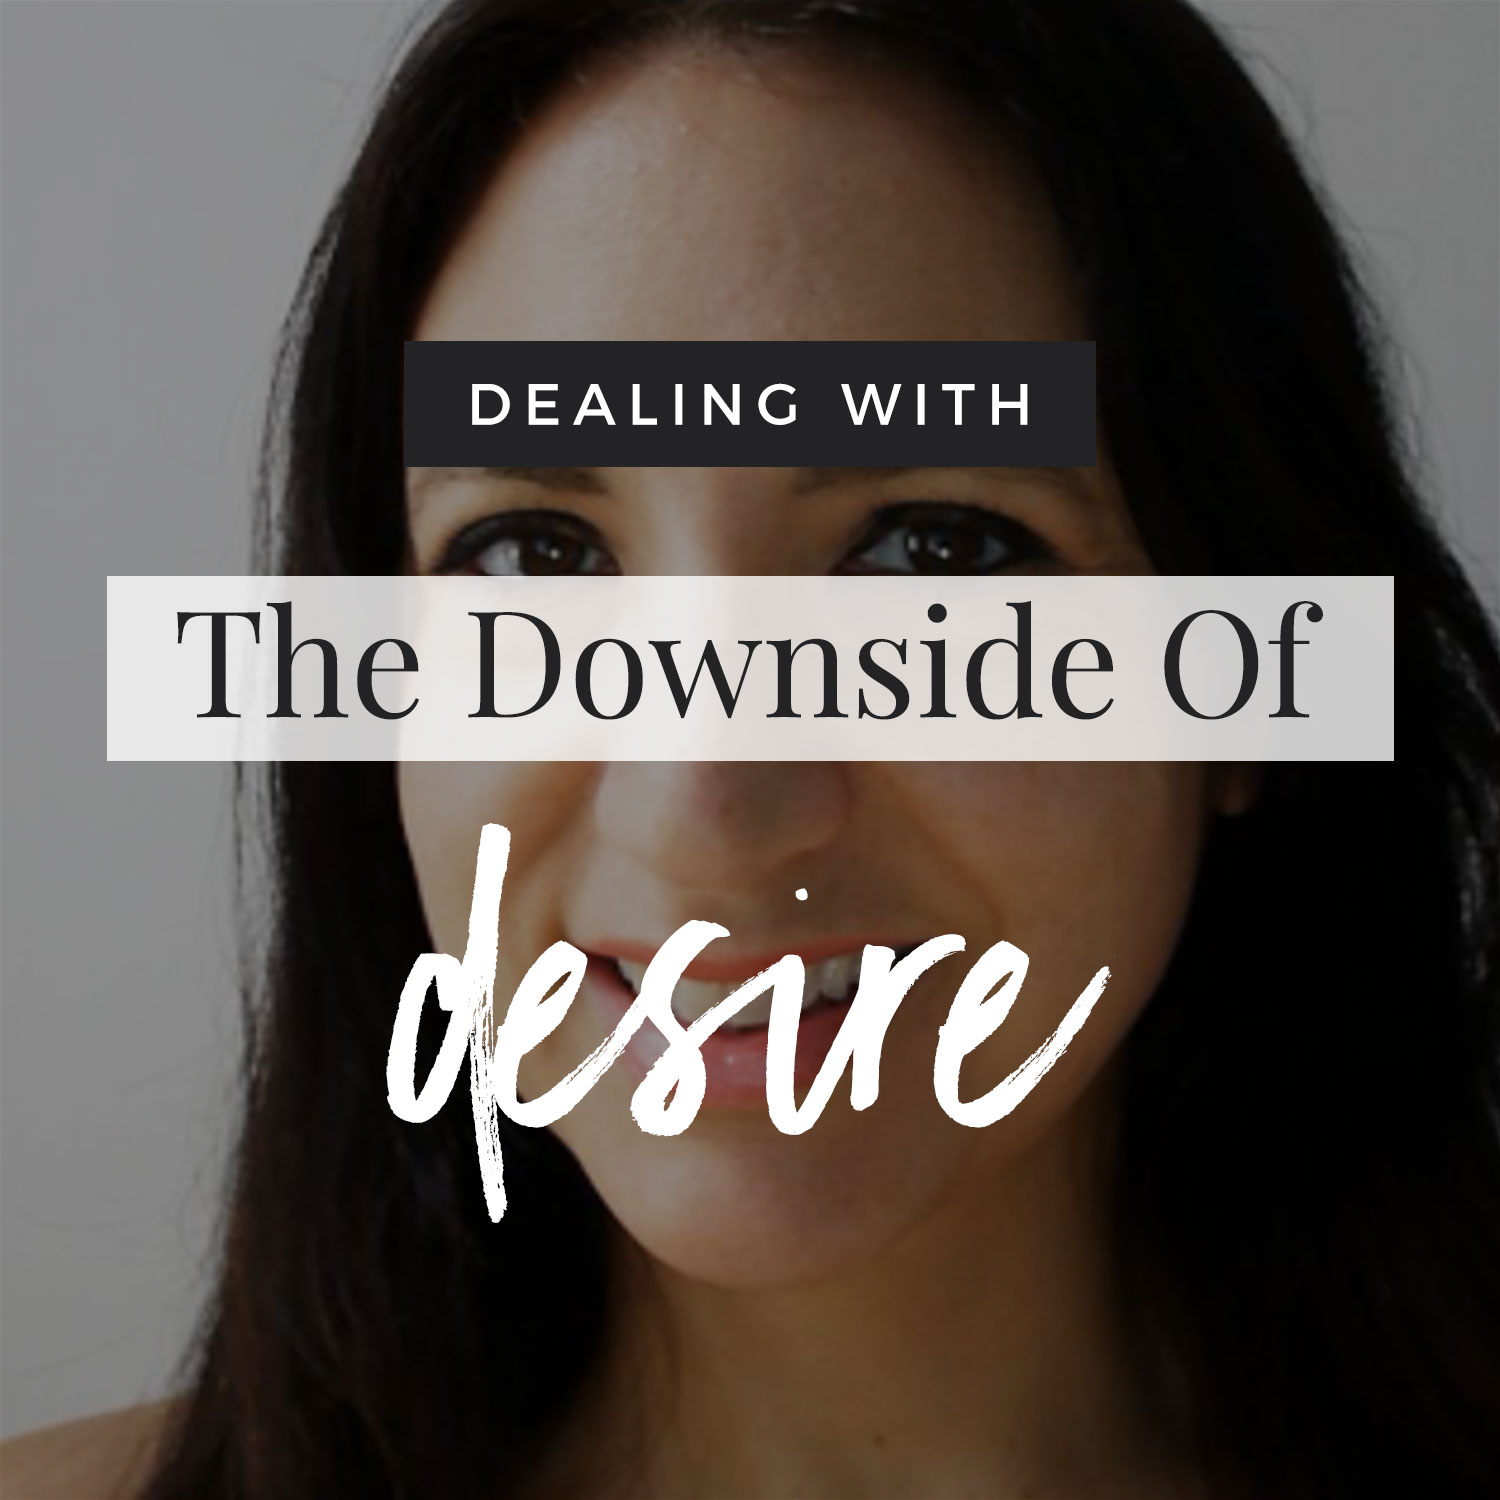 VIDEO: The Downside Of Desire